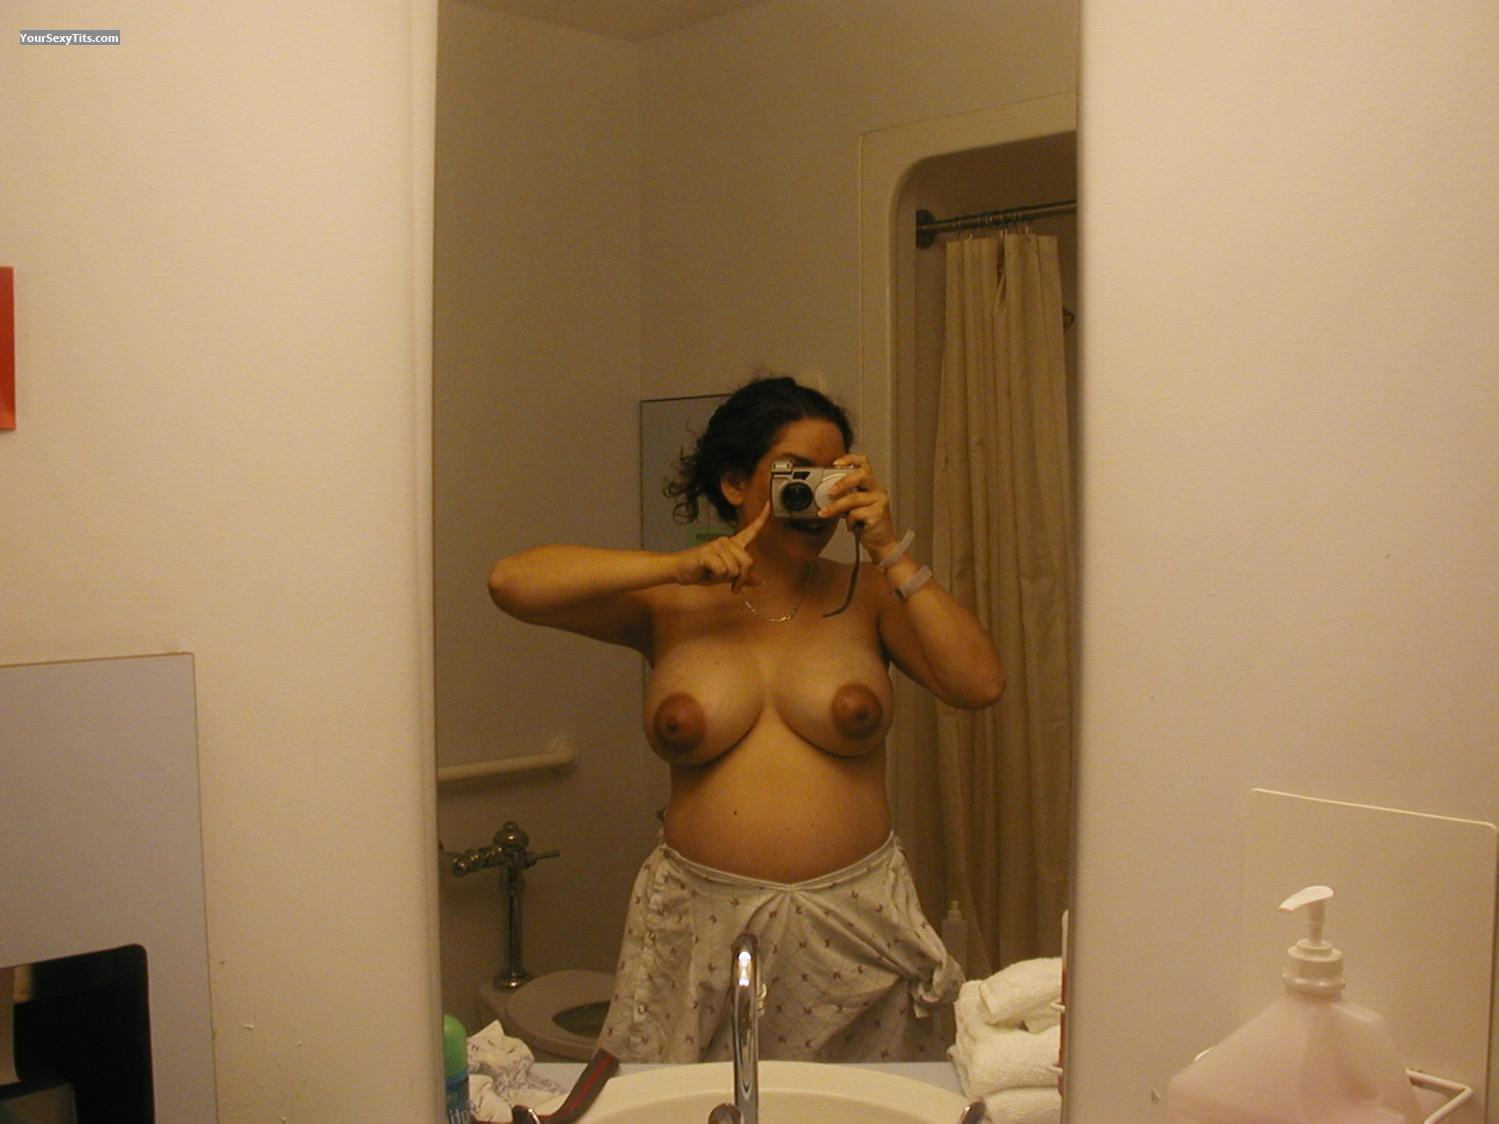 My Big Tits Selfie by Canadaman